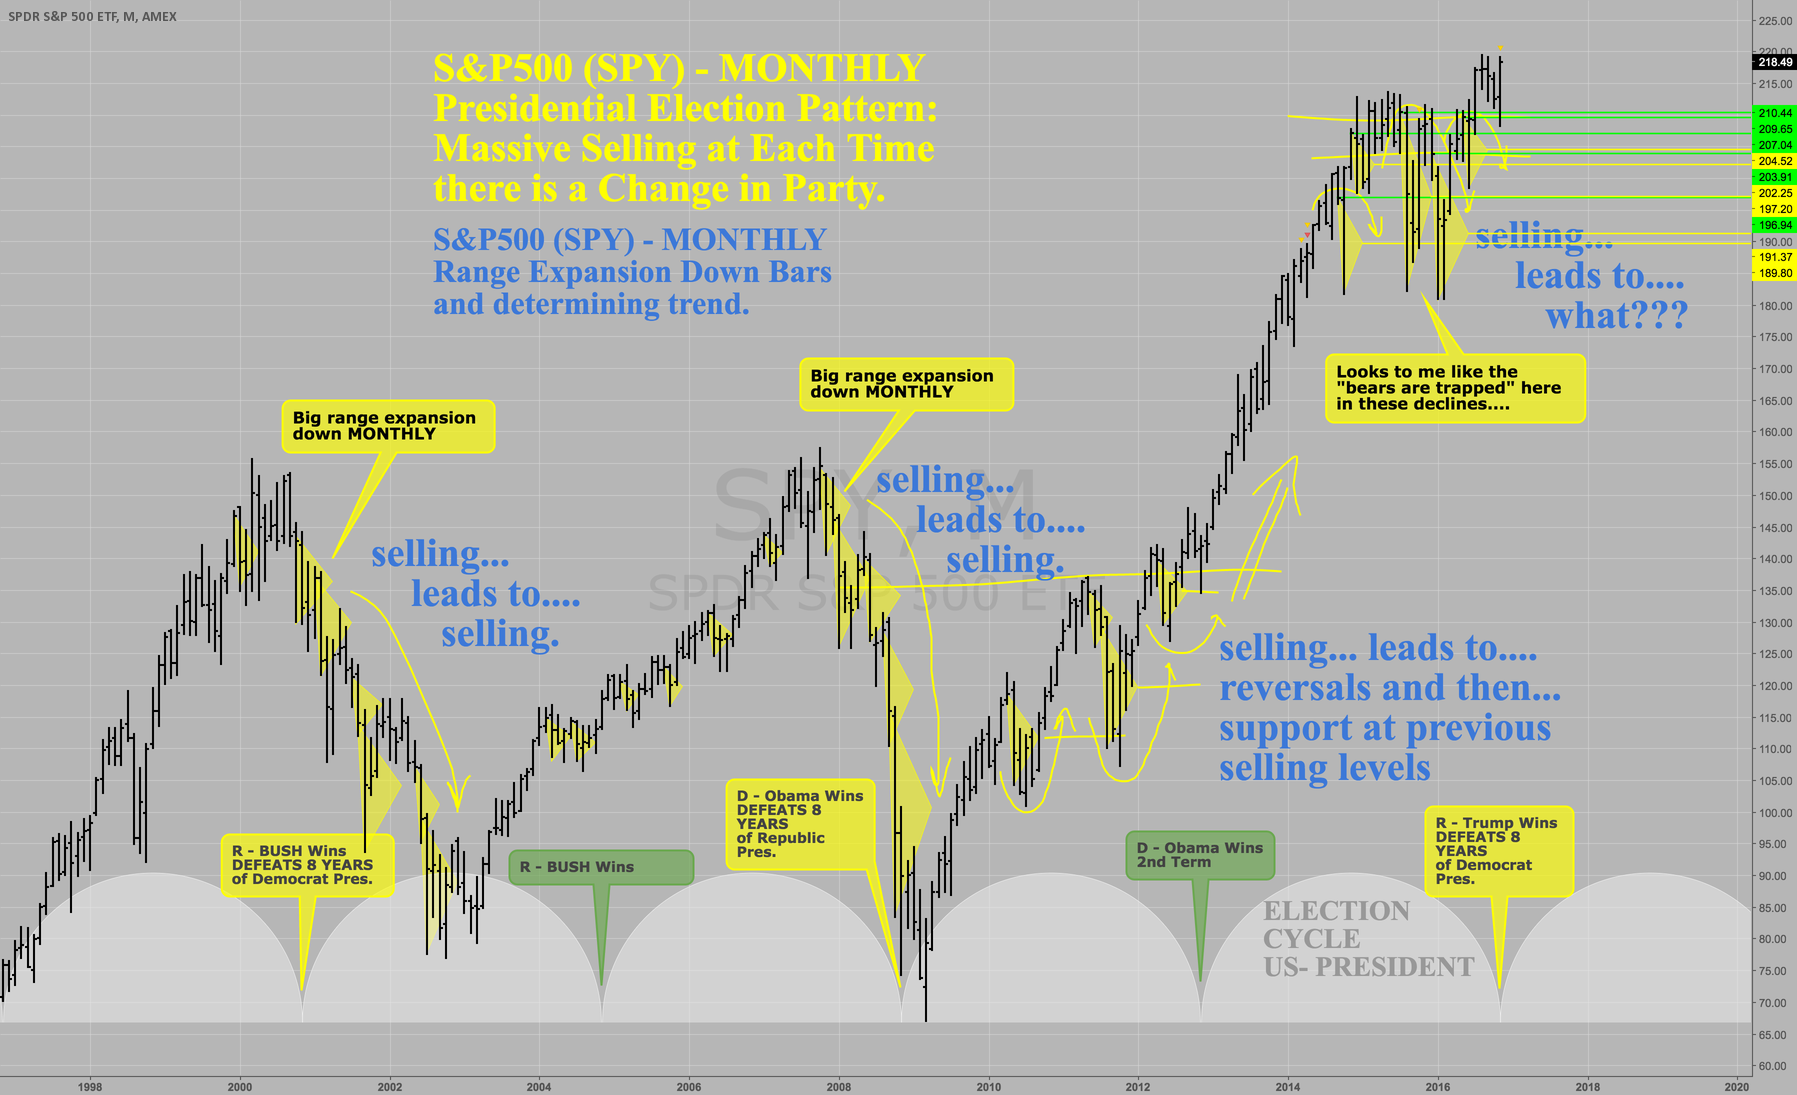 Pattern to Predict Presidential Election: S&P500 SPY